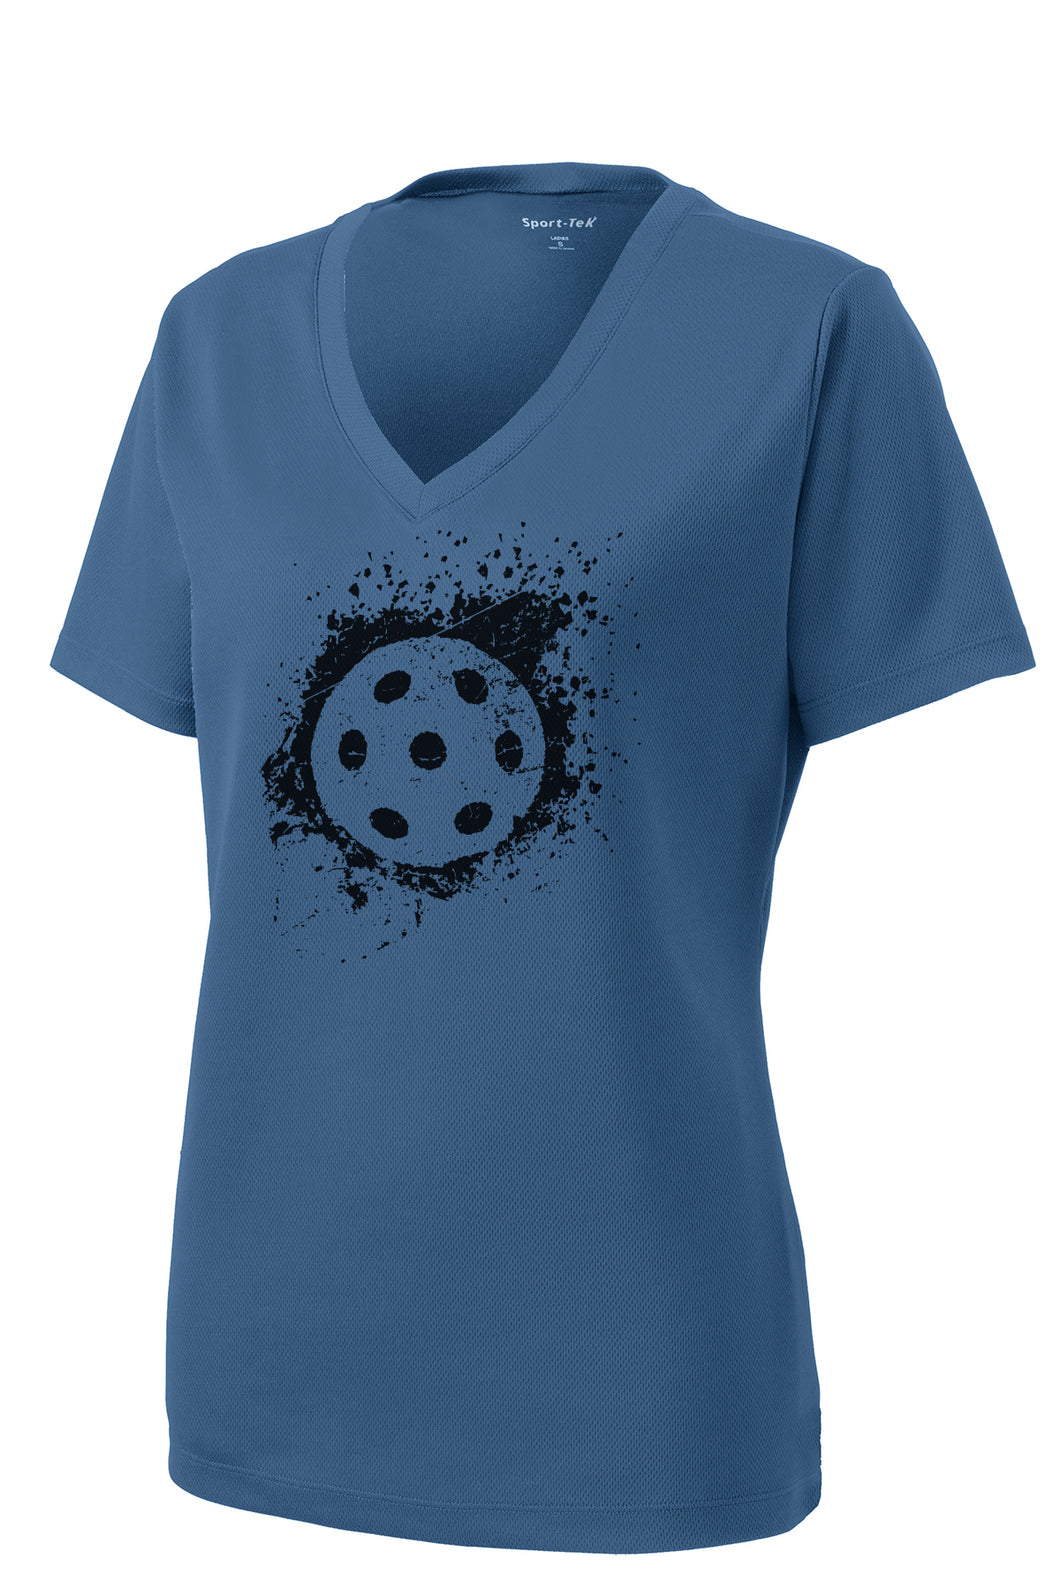 Dinkers & Bangers Rugged Pickleball Performance Tee Blue